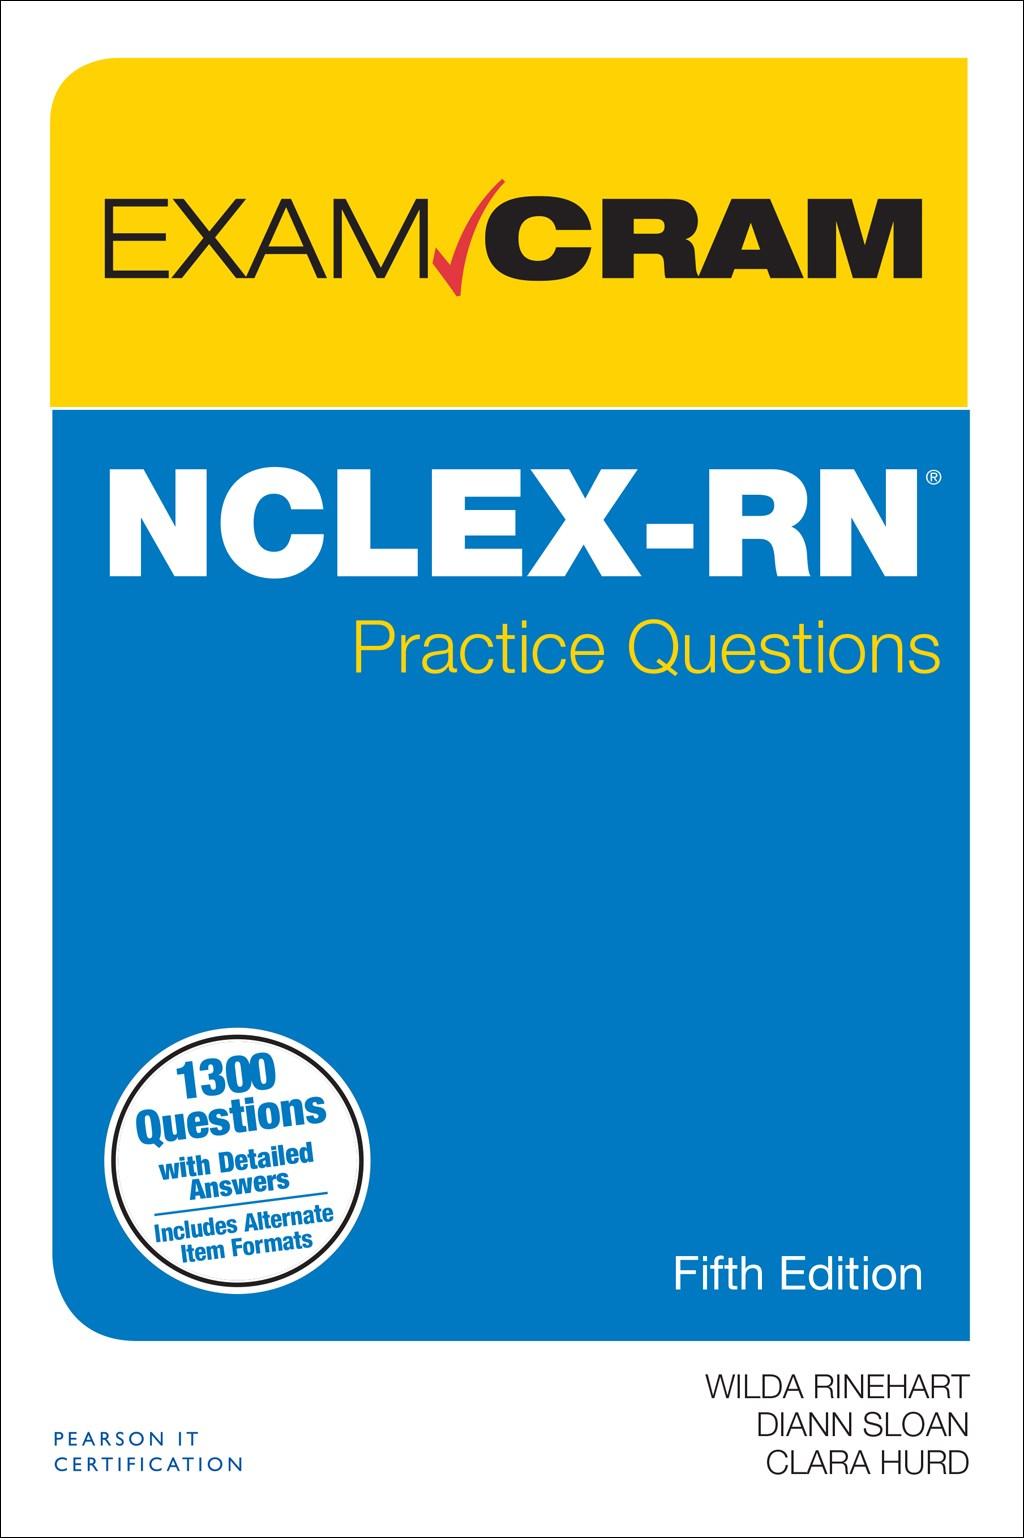 NCLEX-RN Practice Questions Exam Cram, 5th Edition